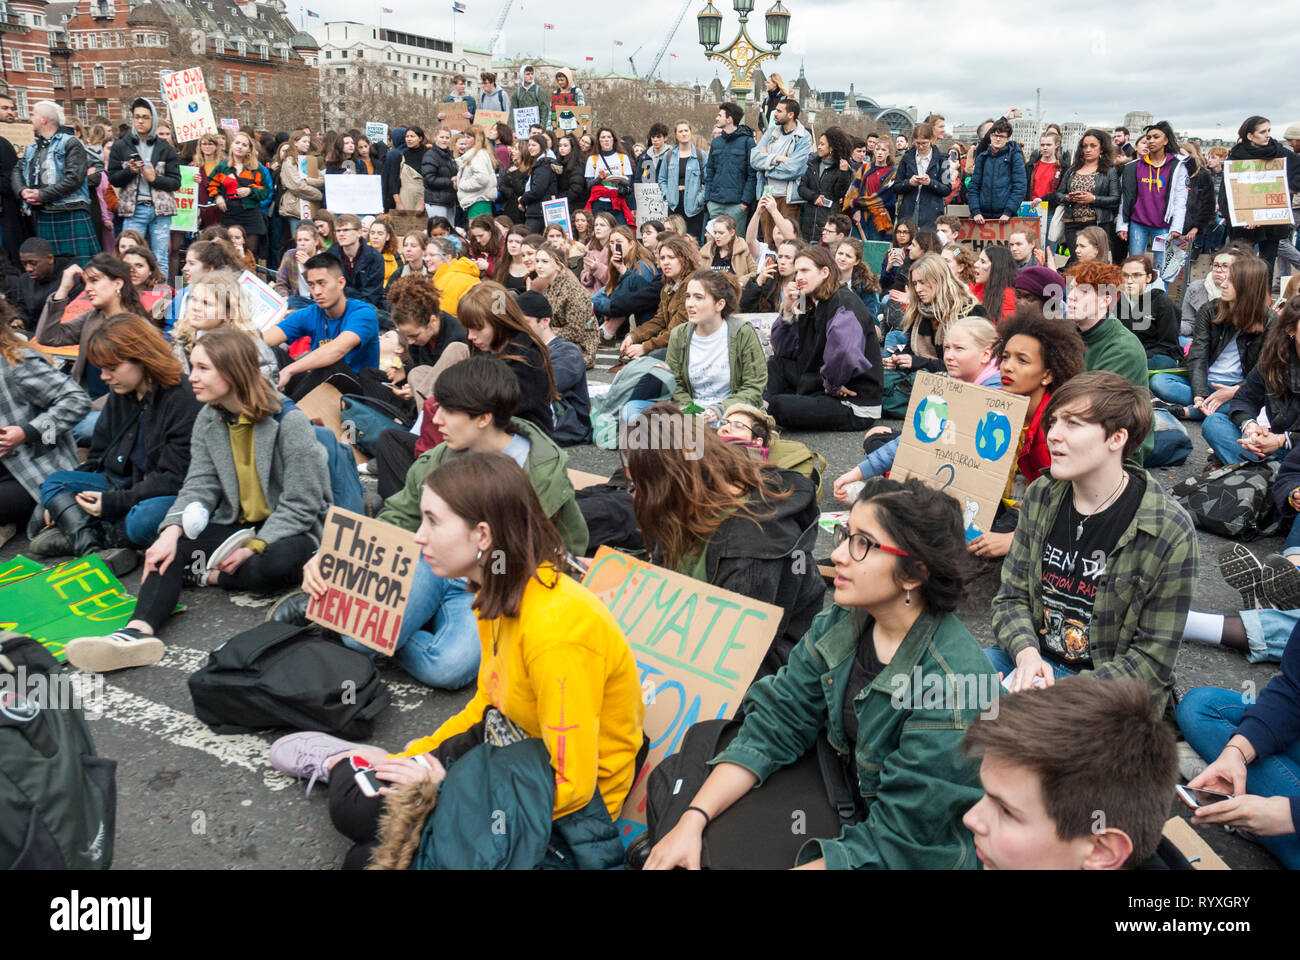 London, UK. 15th March, 2019. School students campaigning against climate change protest outside Parliament. Credit: Maggie sully/Alamy Live News. School children on strike to protest at climate change gather outside Parliament, London, and have a sit down protest on Westminster Bridge blocking it to all through traffic. There was then a lively meeting with many young speakers addressing the concerns of the youth about climate justice and global warming. Banners include 'This is environ- MENTAL'.  Part of the worldwide 'FridaysforFuture' protest. - Stock Image